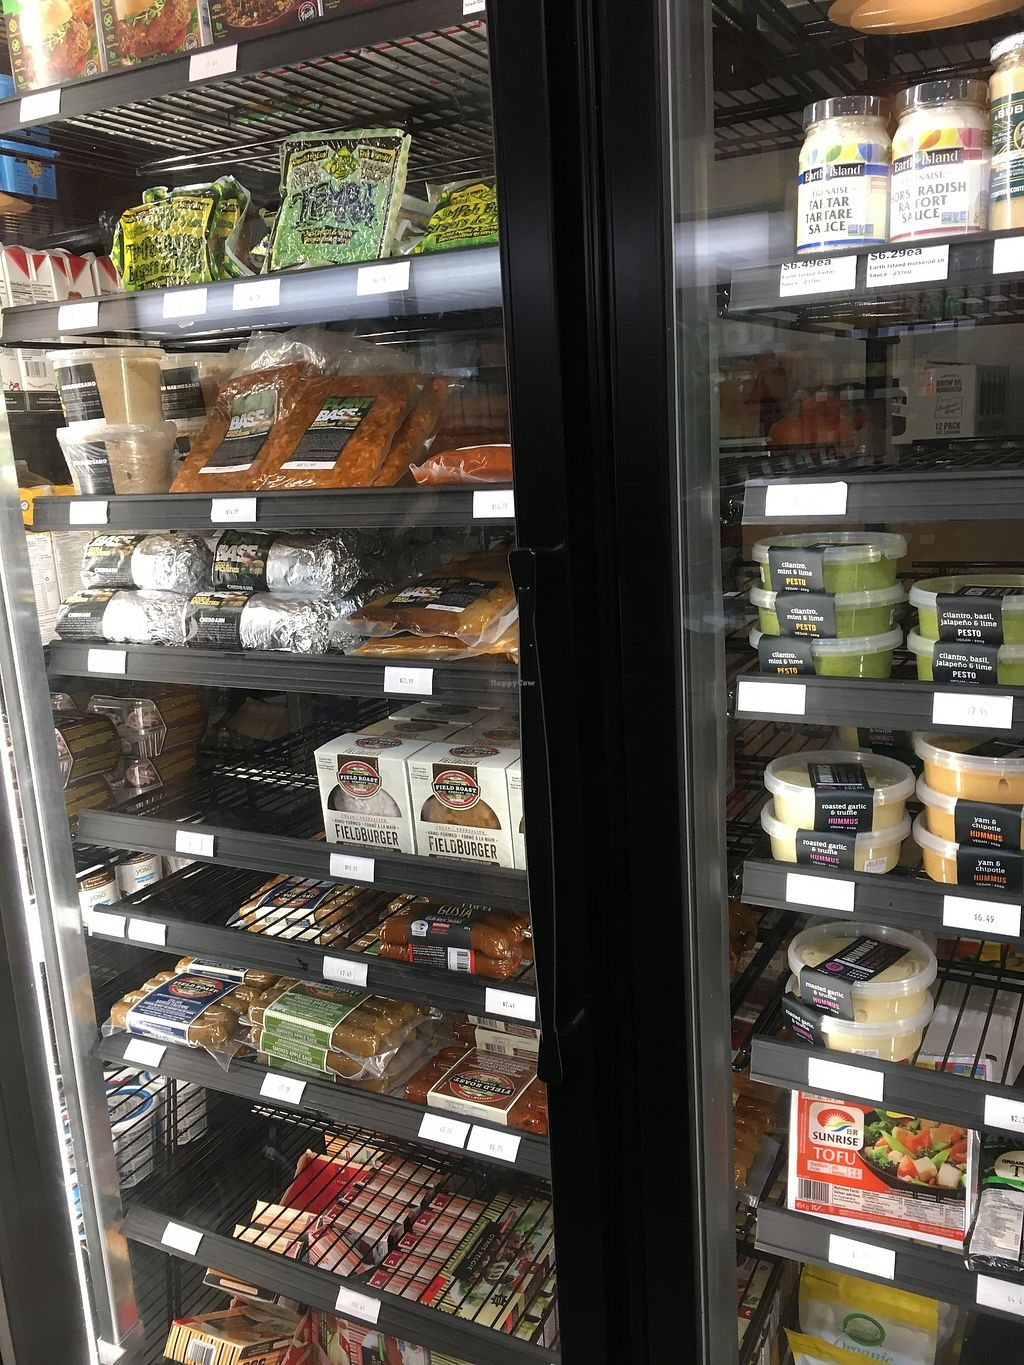 """Photo of Vegan Supply  by <a href=""""/members/profile/vegan%20frog"""">vegan frog</a> <br/>Fresh options <br/> August 7, 2017  - <a href='/contact/abuse/image/59337/289960'>Report</a>"""